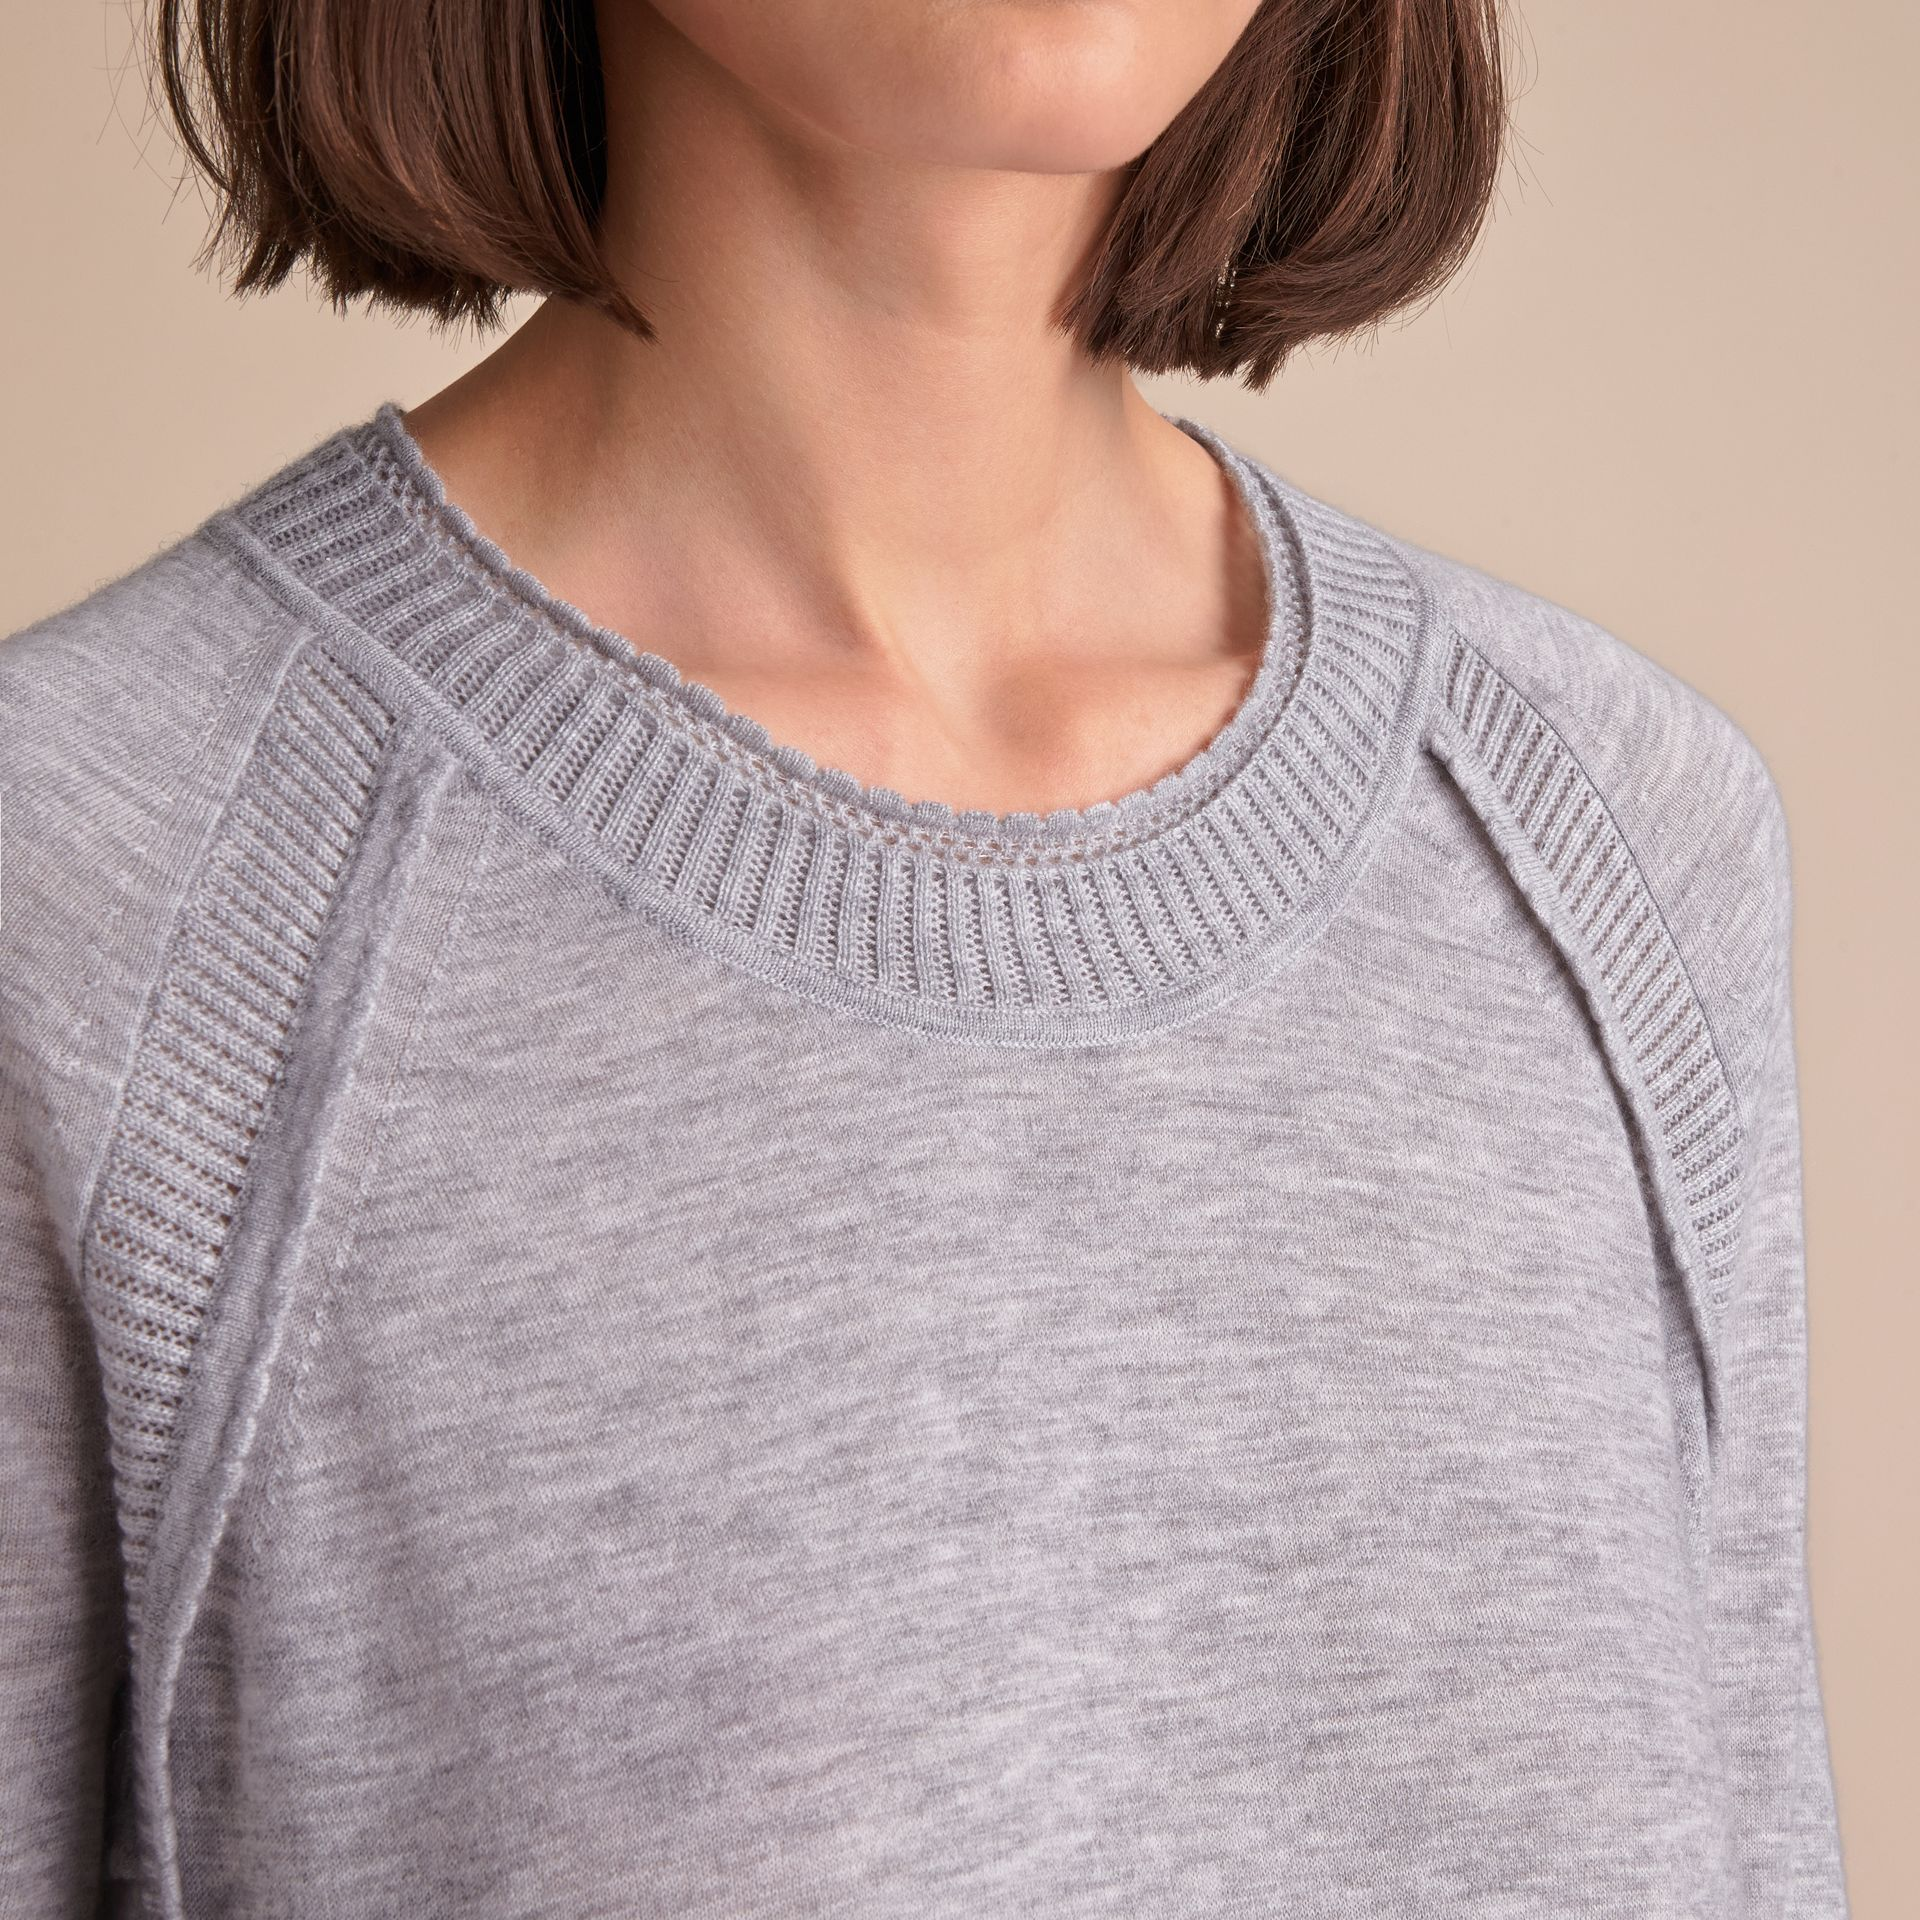 Open-knit Detail Cashmere Crew Neck Sweater in Light Grey Melange - Women | Burberry Singapore - gallery image 5